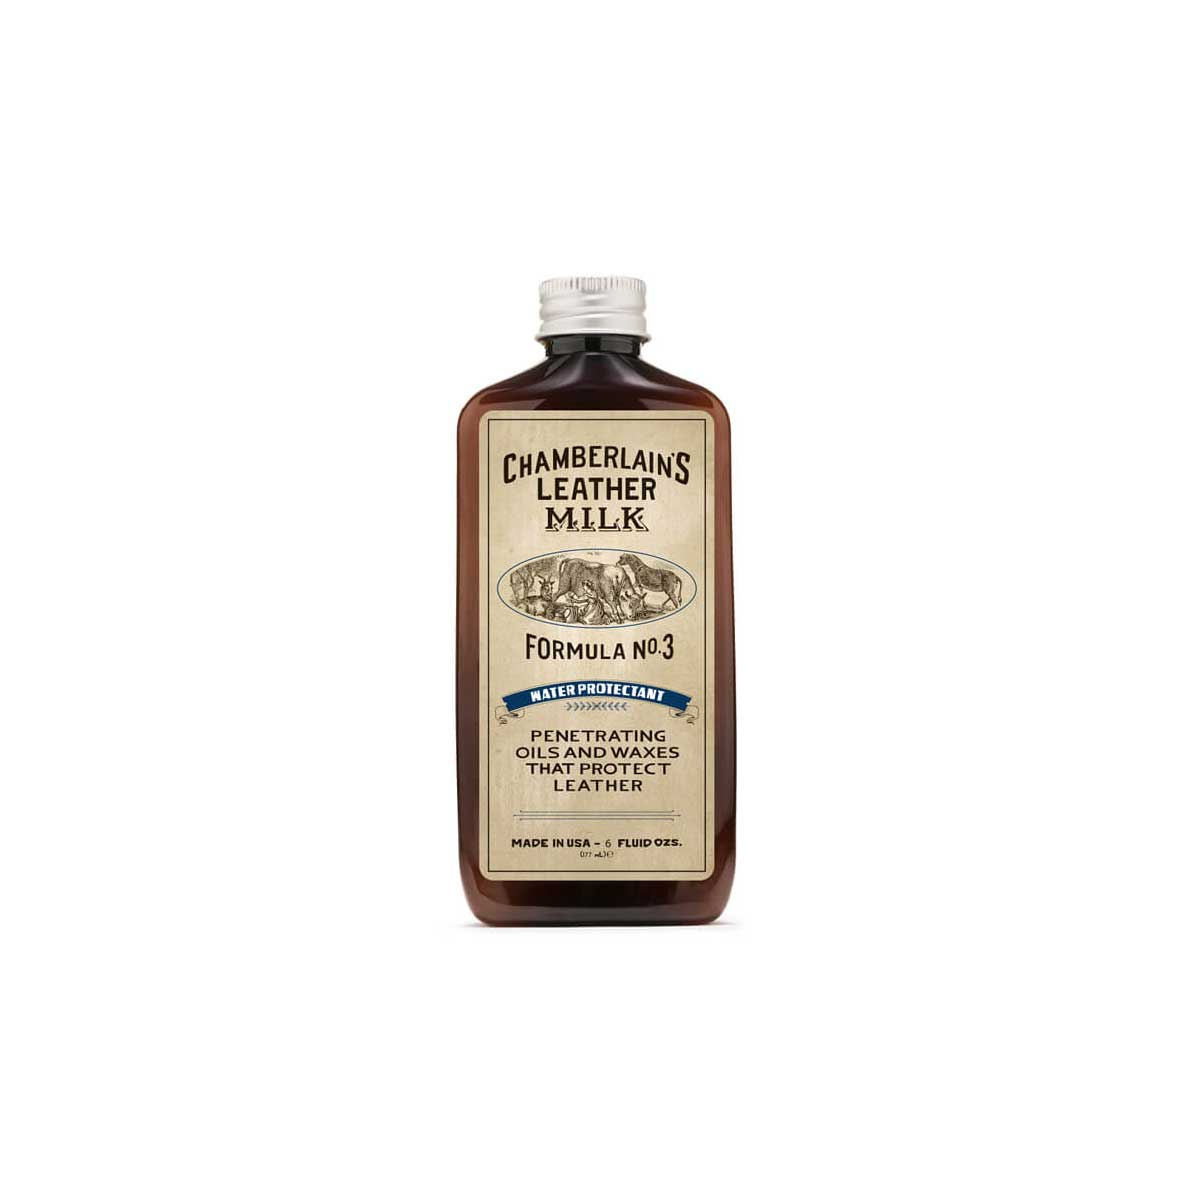 Chamberlain's Leather Milk Water Protectant No. 3 – Premium Leather Protector - 6 oz